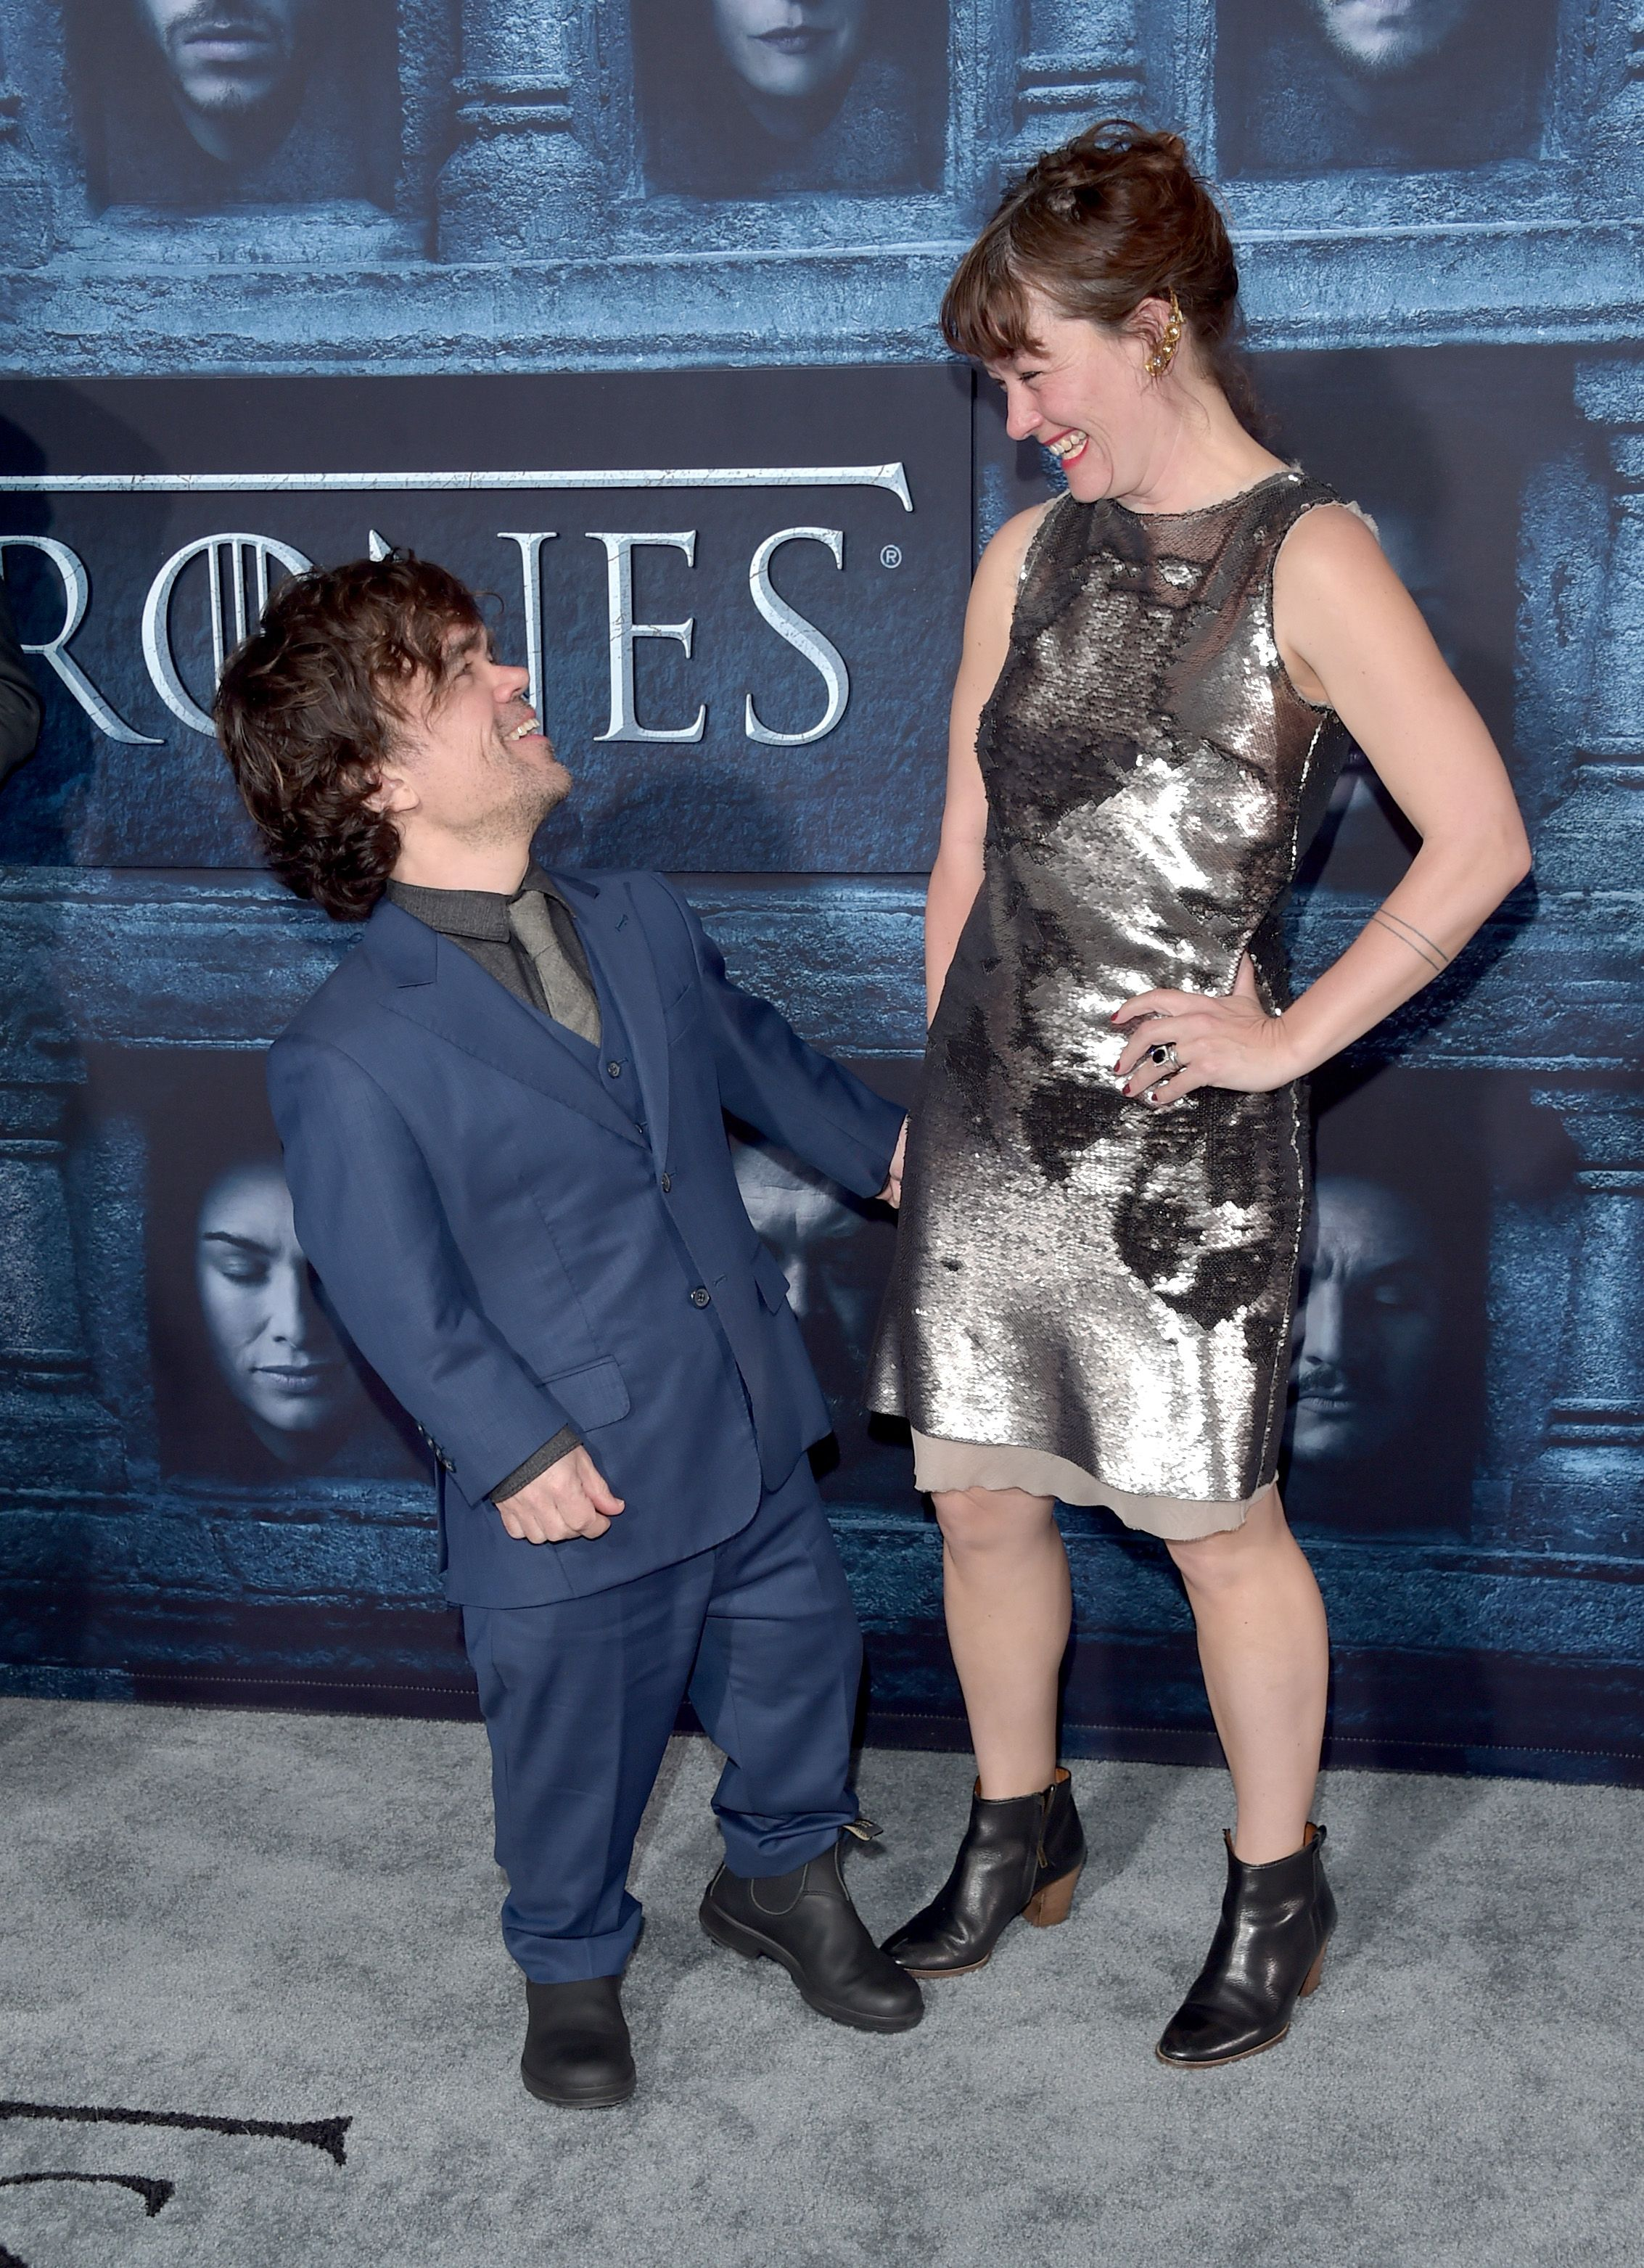 Peter Dinklage (Tyrion Lannister) and Erica Schmidt The couple have been married since 2005 .